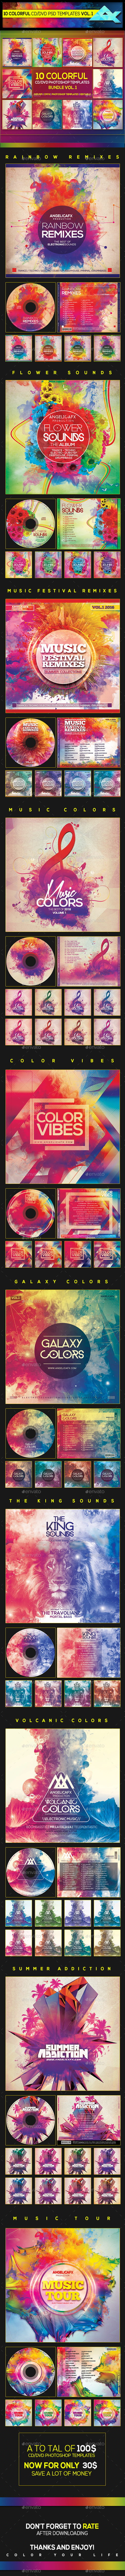 10 Colorful CD/DVD Photoshop Templates Vol 1 - CD & DVD Artwork Print Templates